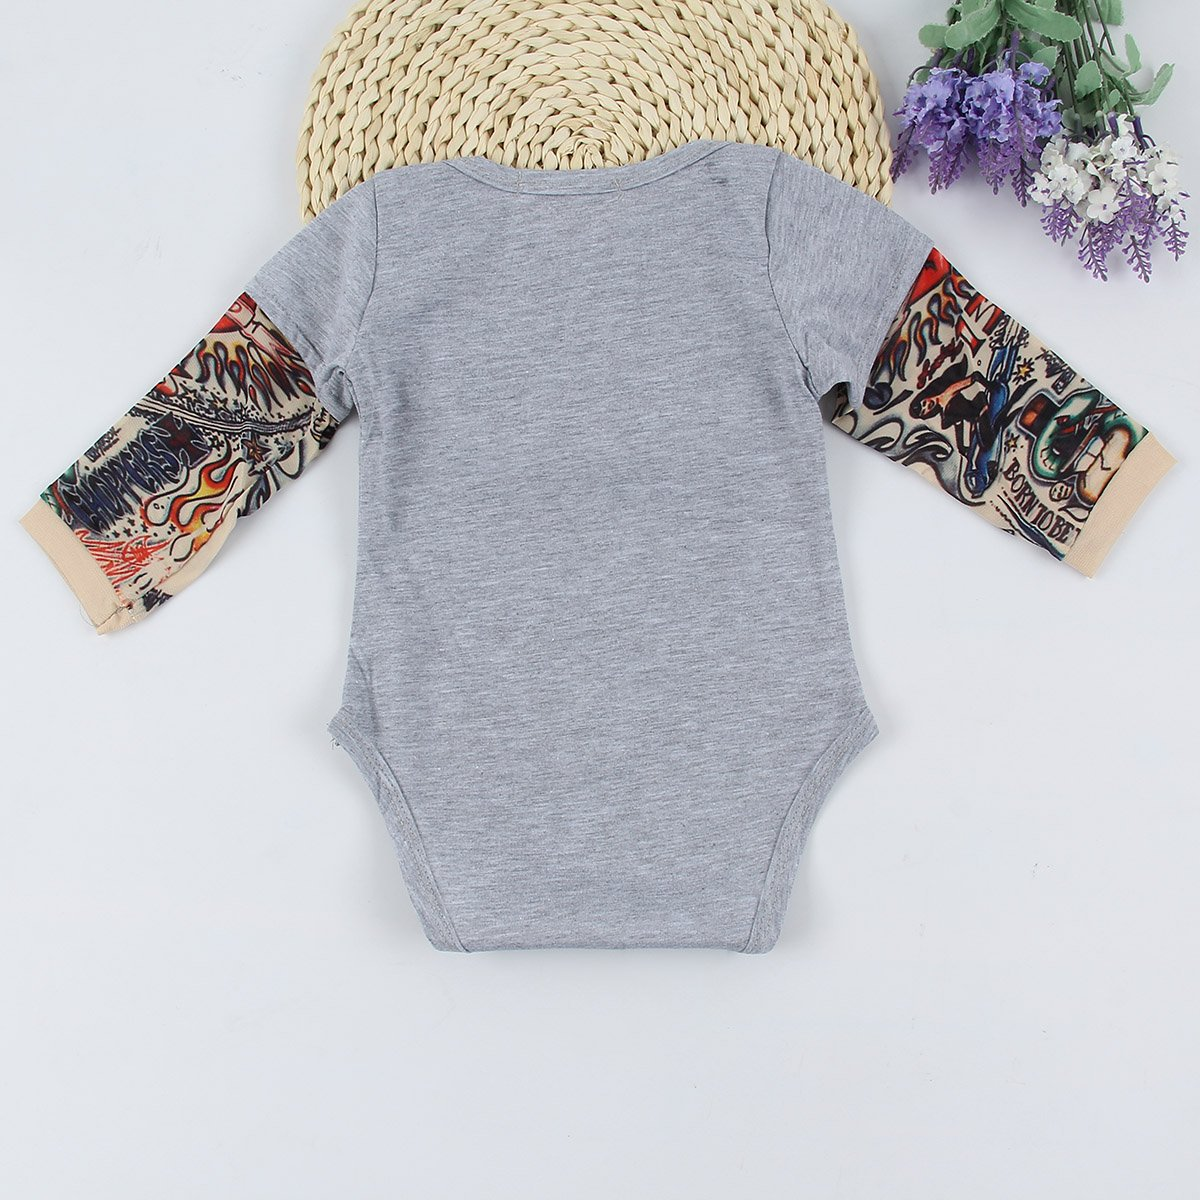 topseller-hzy Newborn Baby Boys Girls Tattoo Print Long Sleeve Romper Jumpsuit Bodysuit Outfits